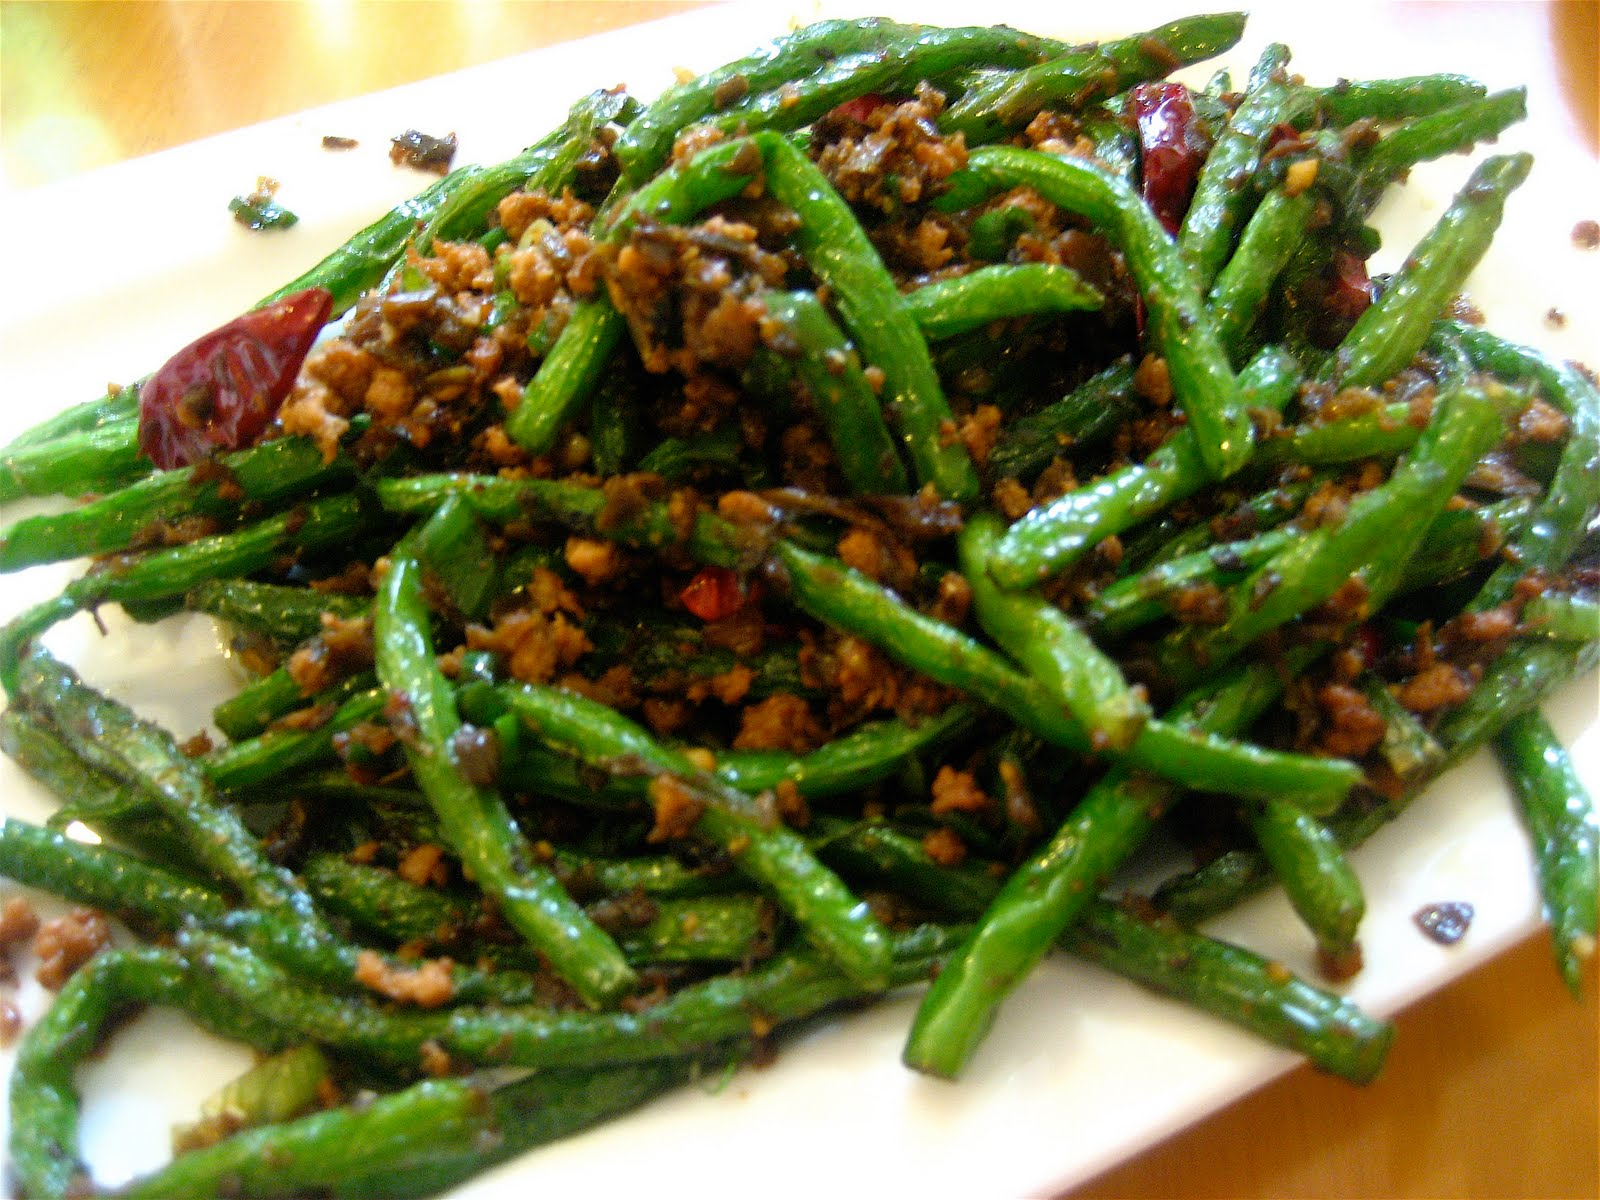 Dry fried green beans with pork mince and chillis were salty..